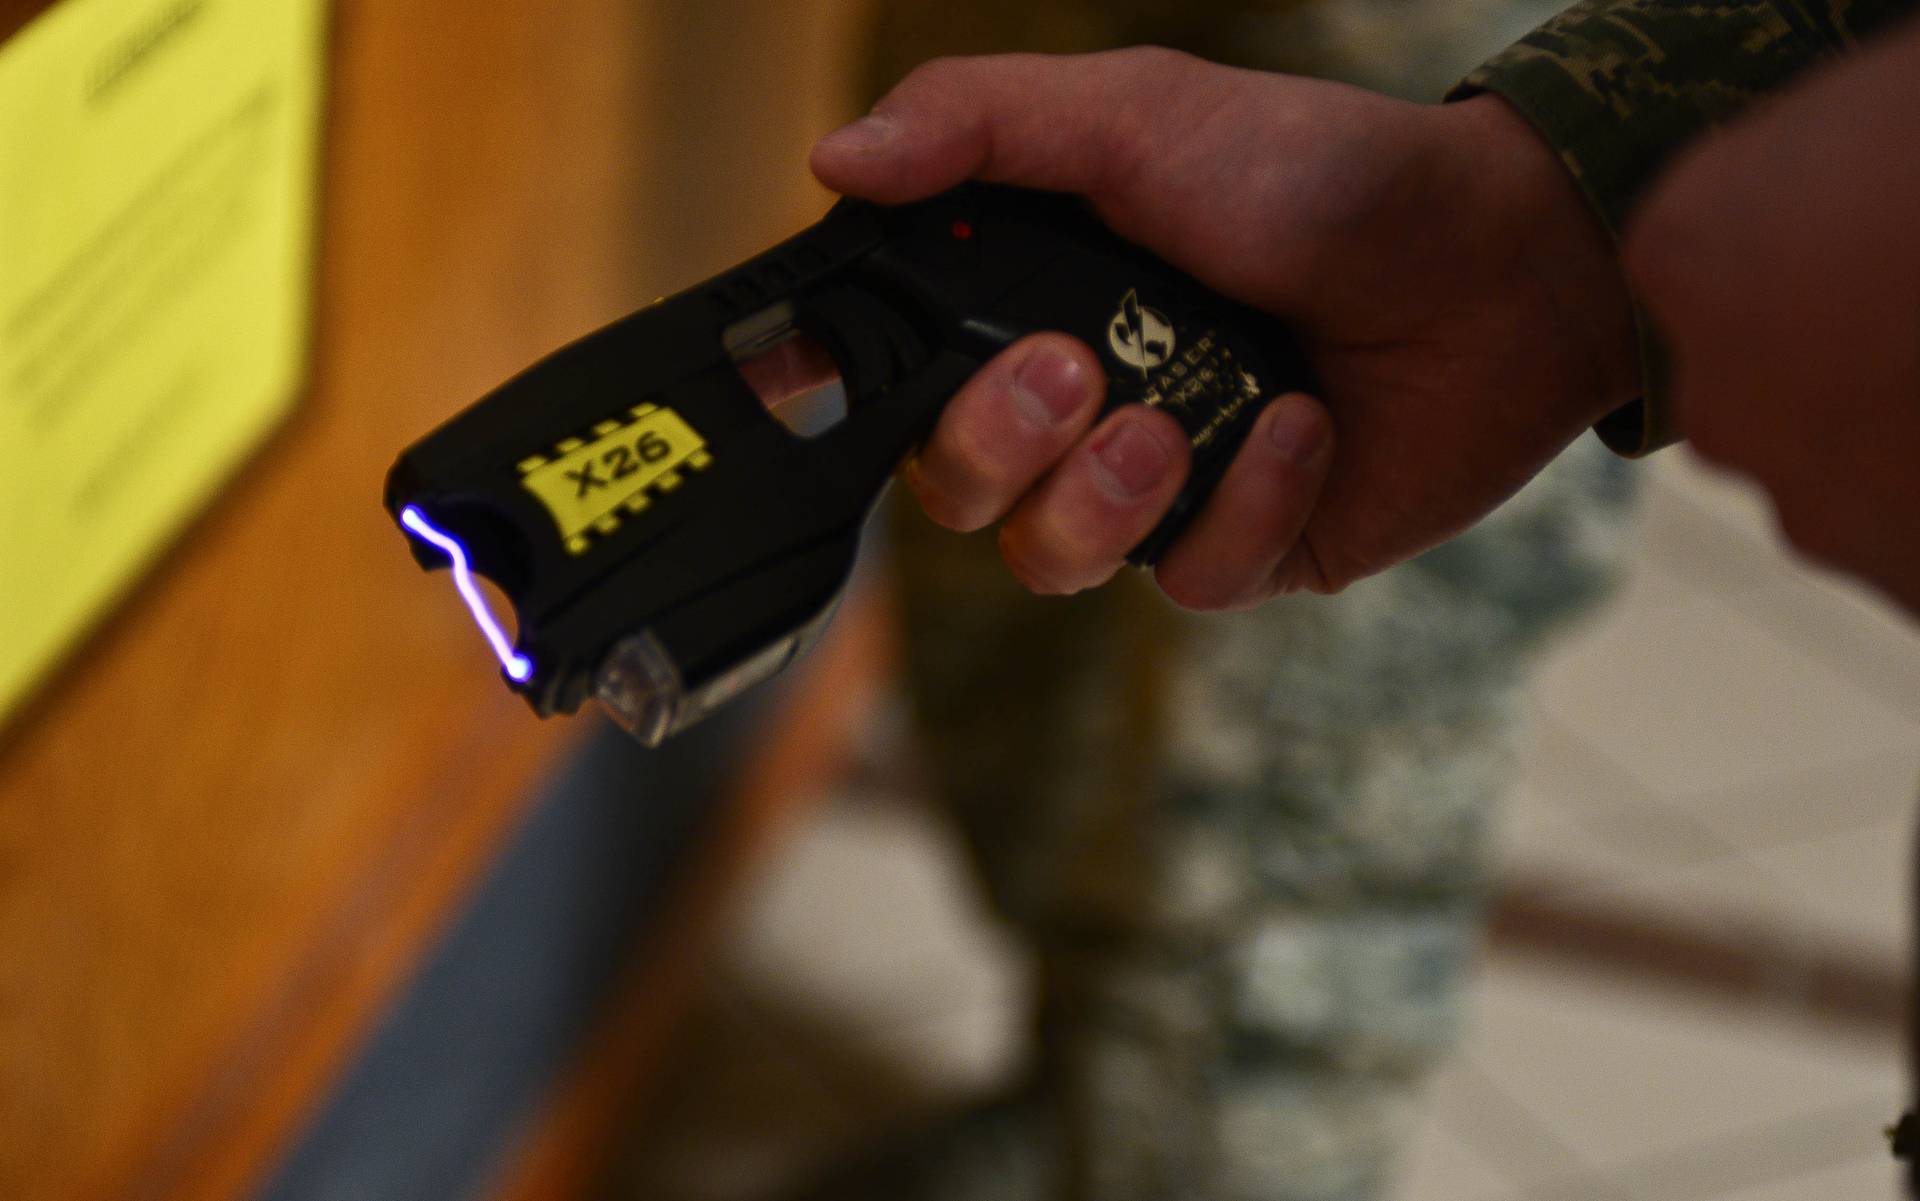 The year tasers became deadly: A look at three police